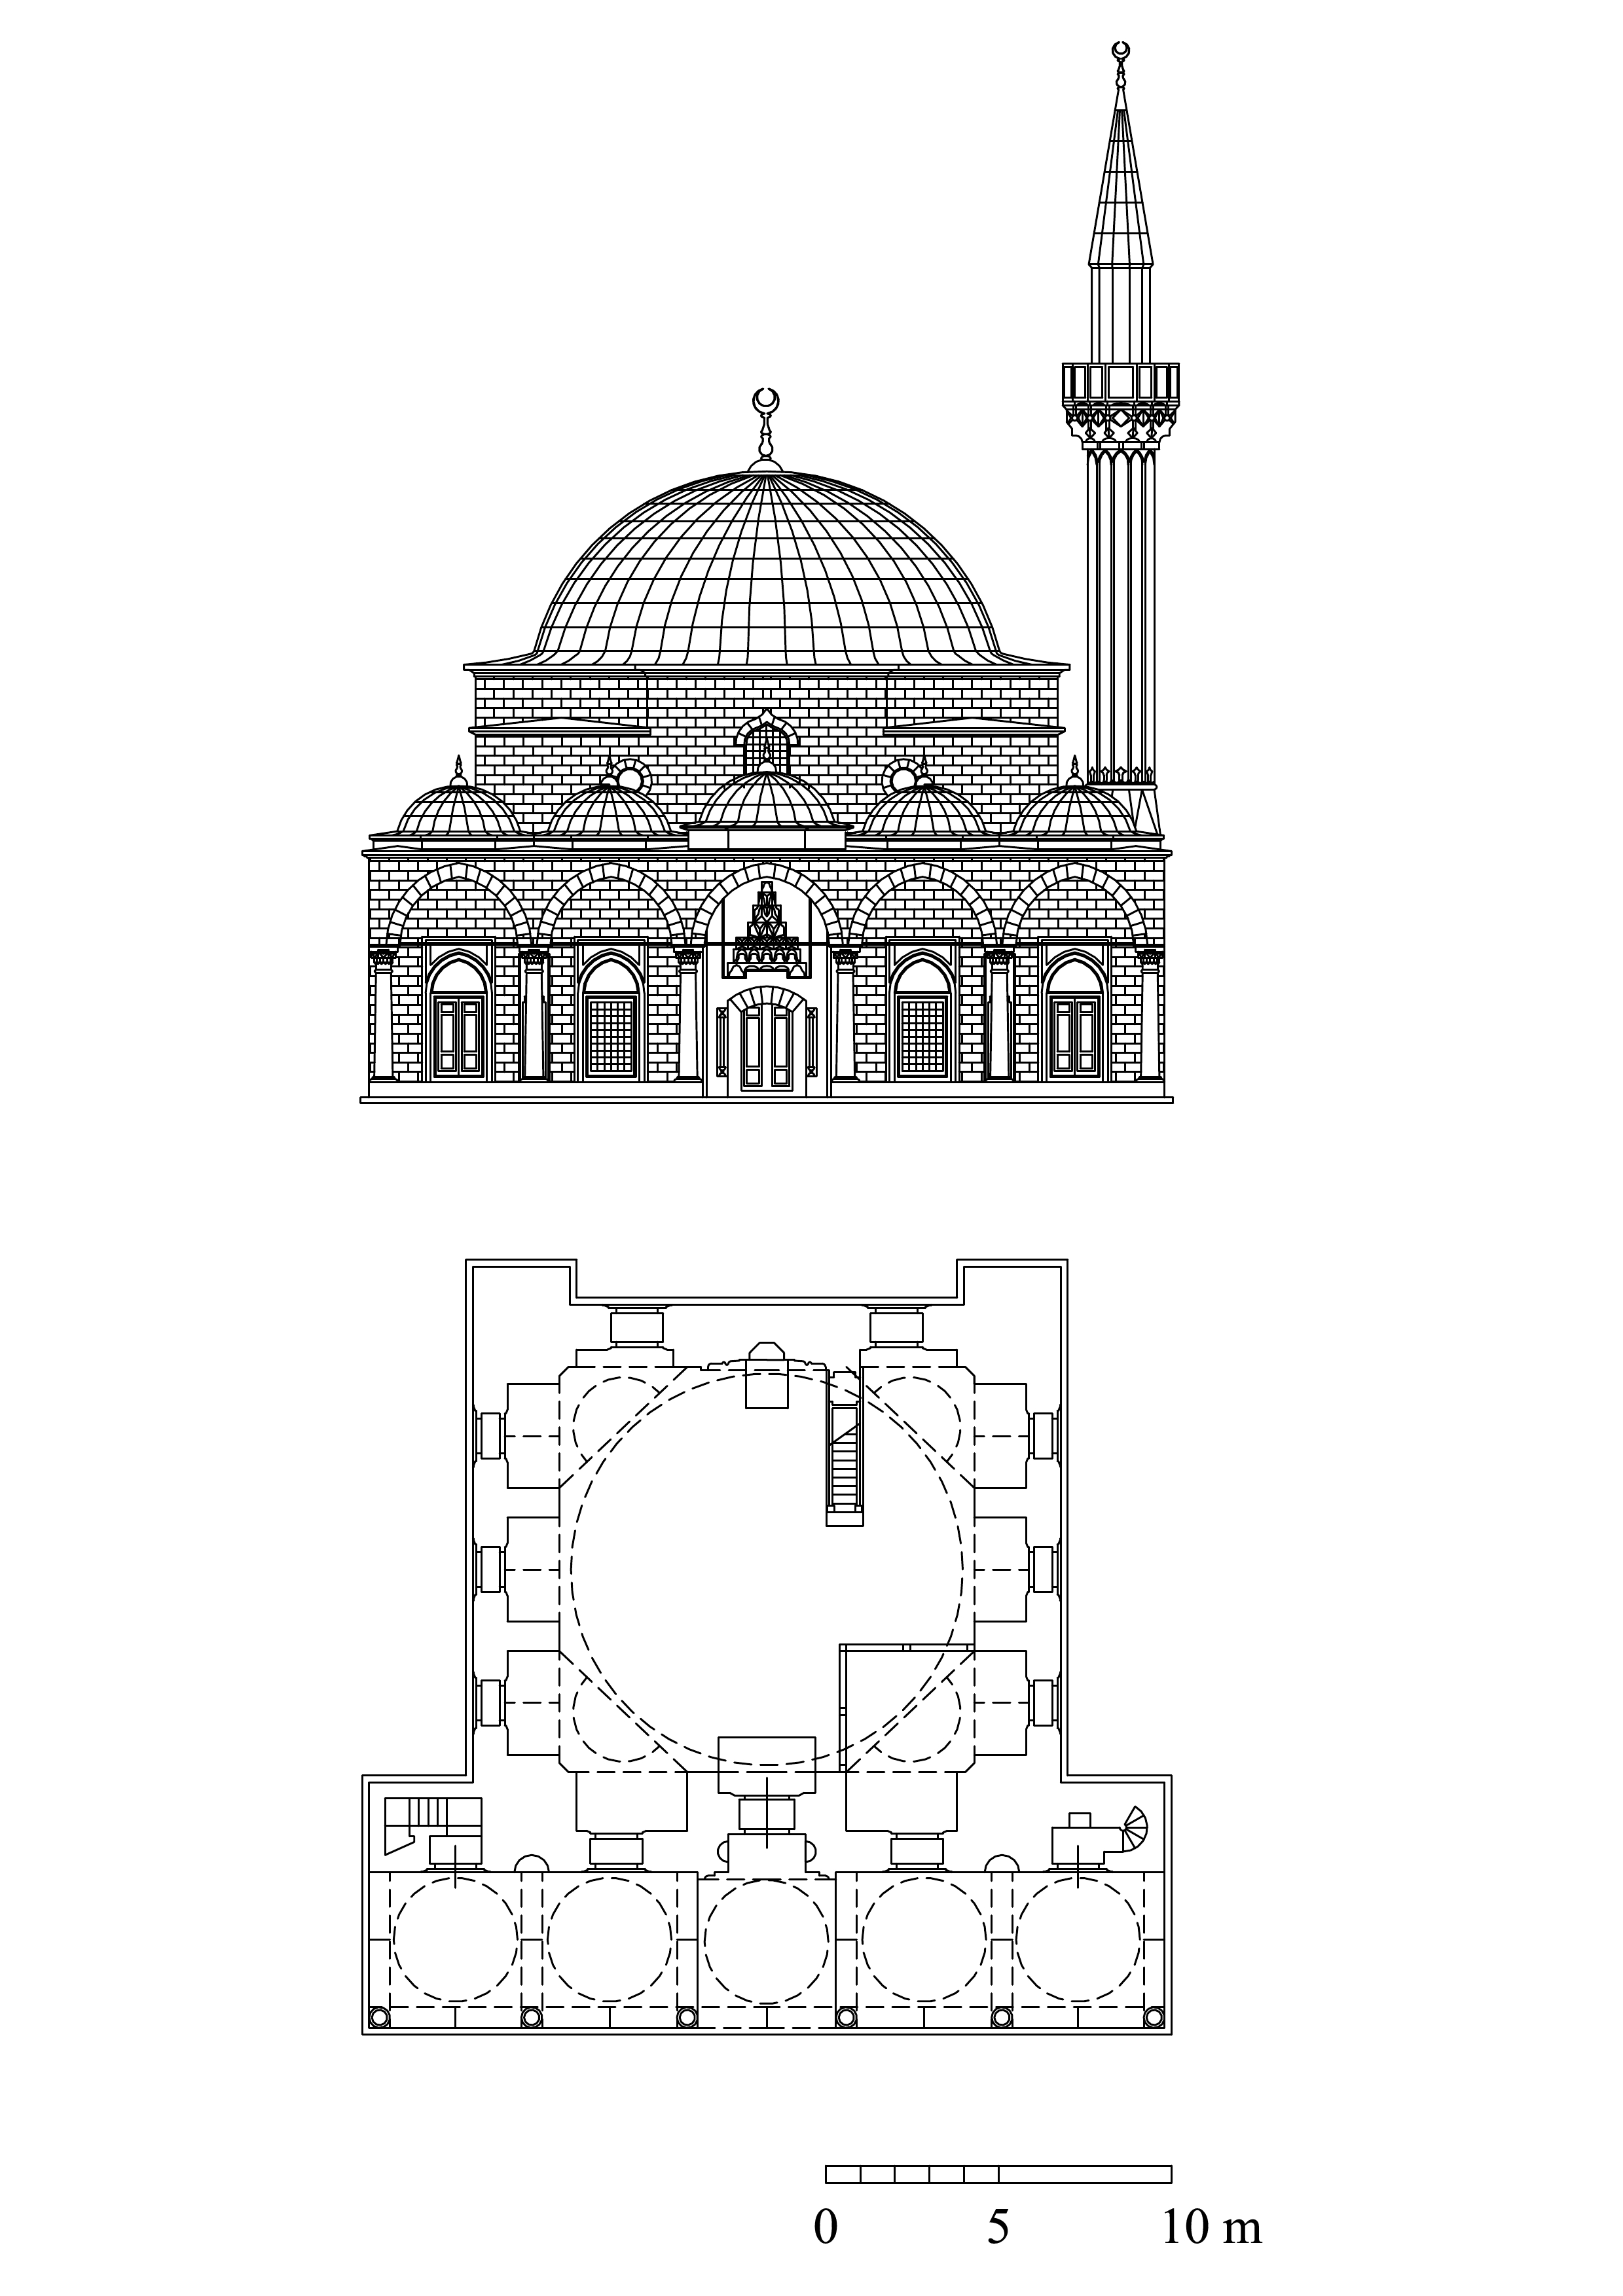 Floor plan and elevation of Bali Pasa Mosque | Archnet